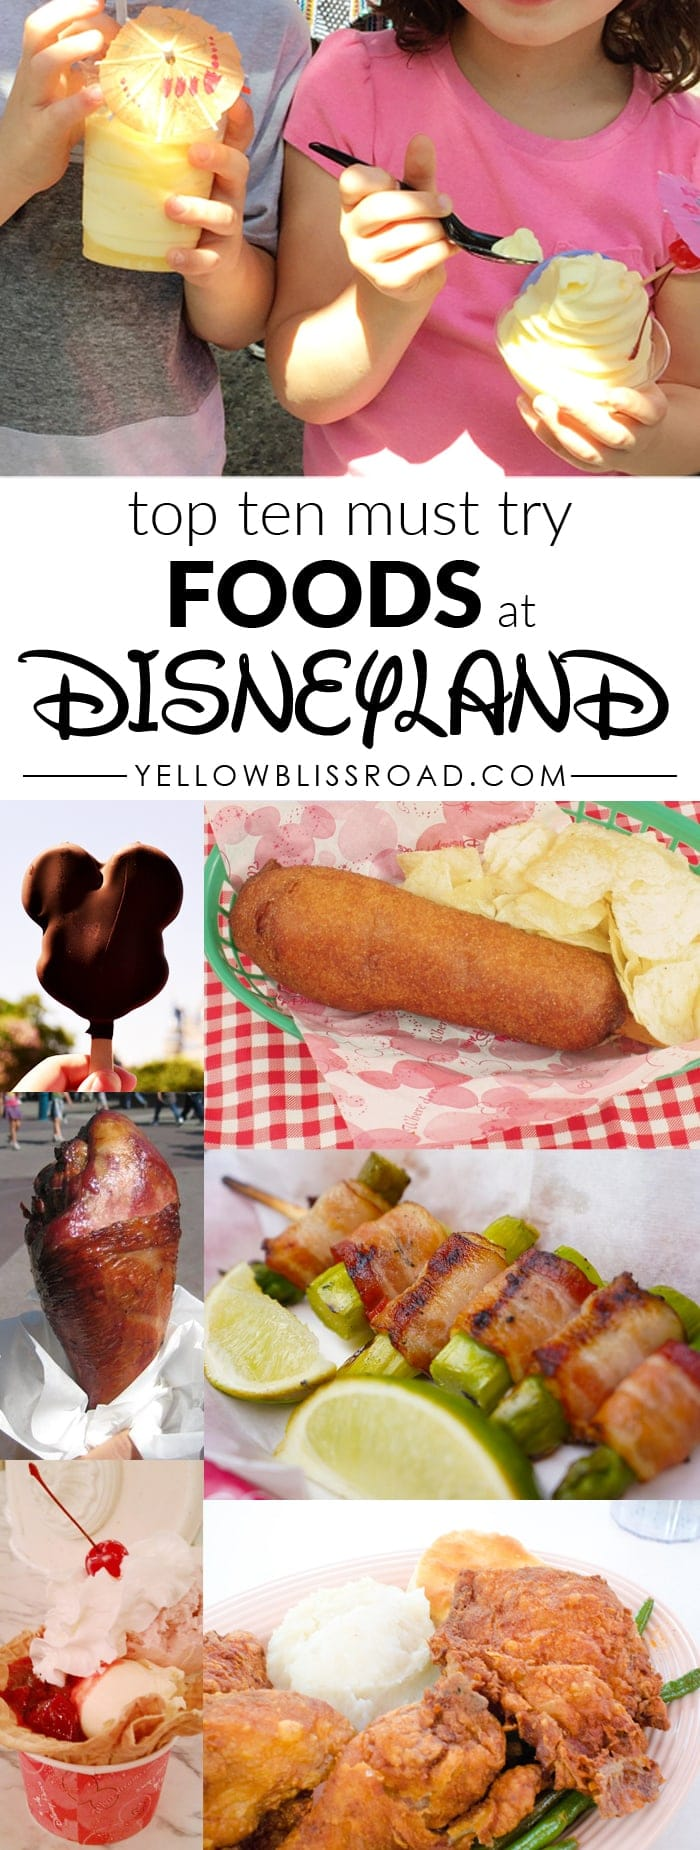 Top Ten Must Try Foods at Disneyland